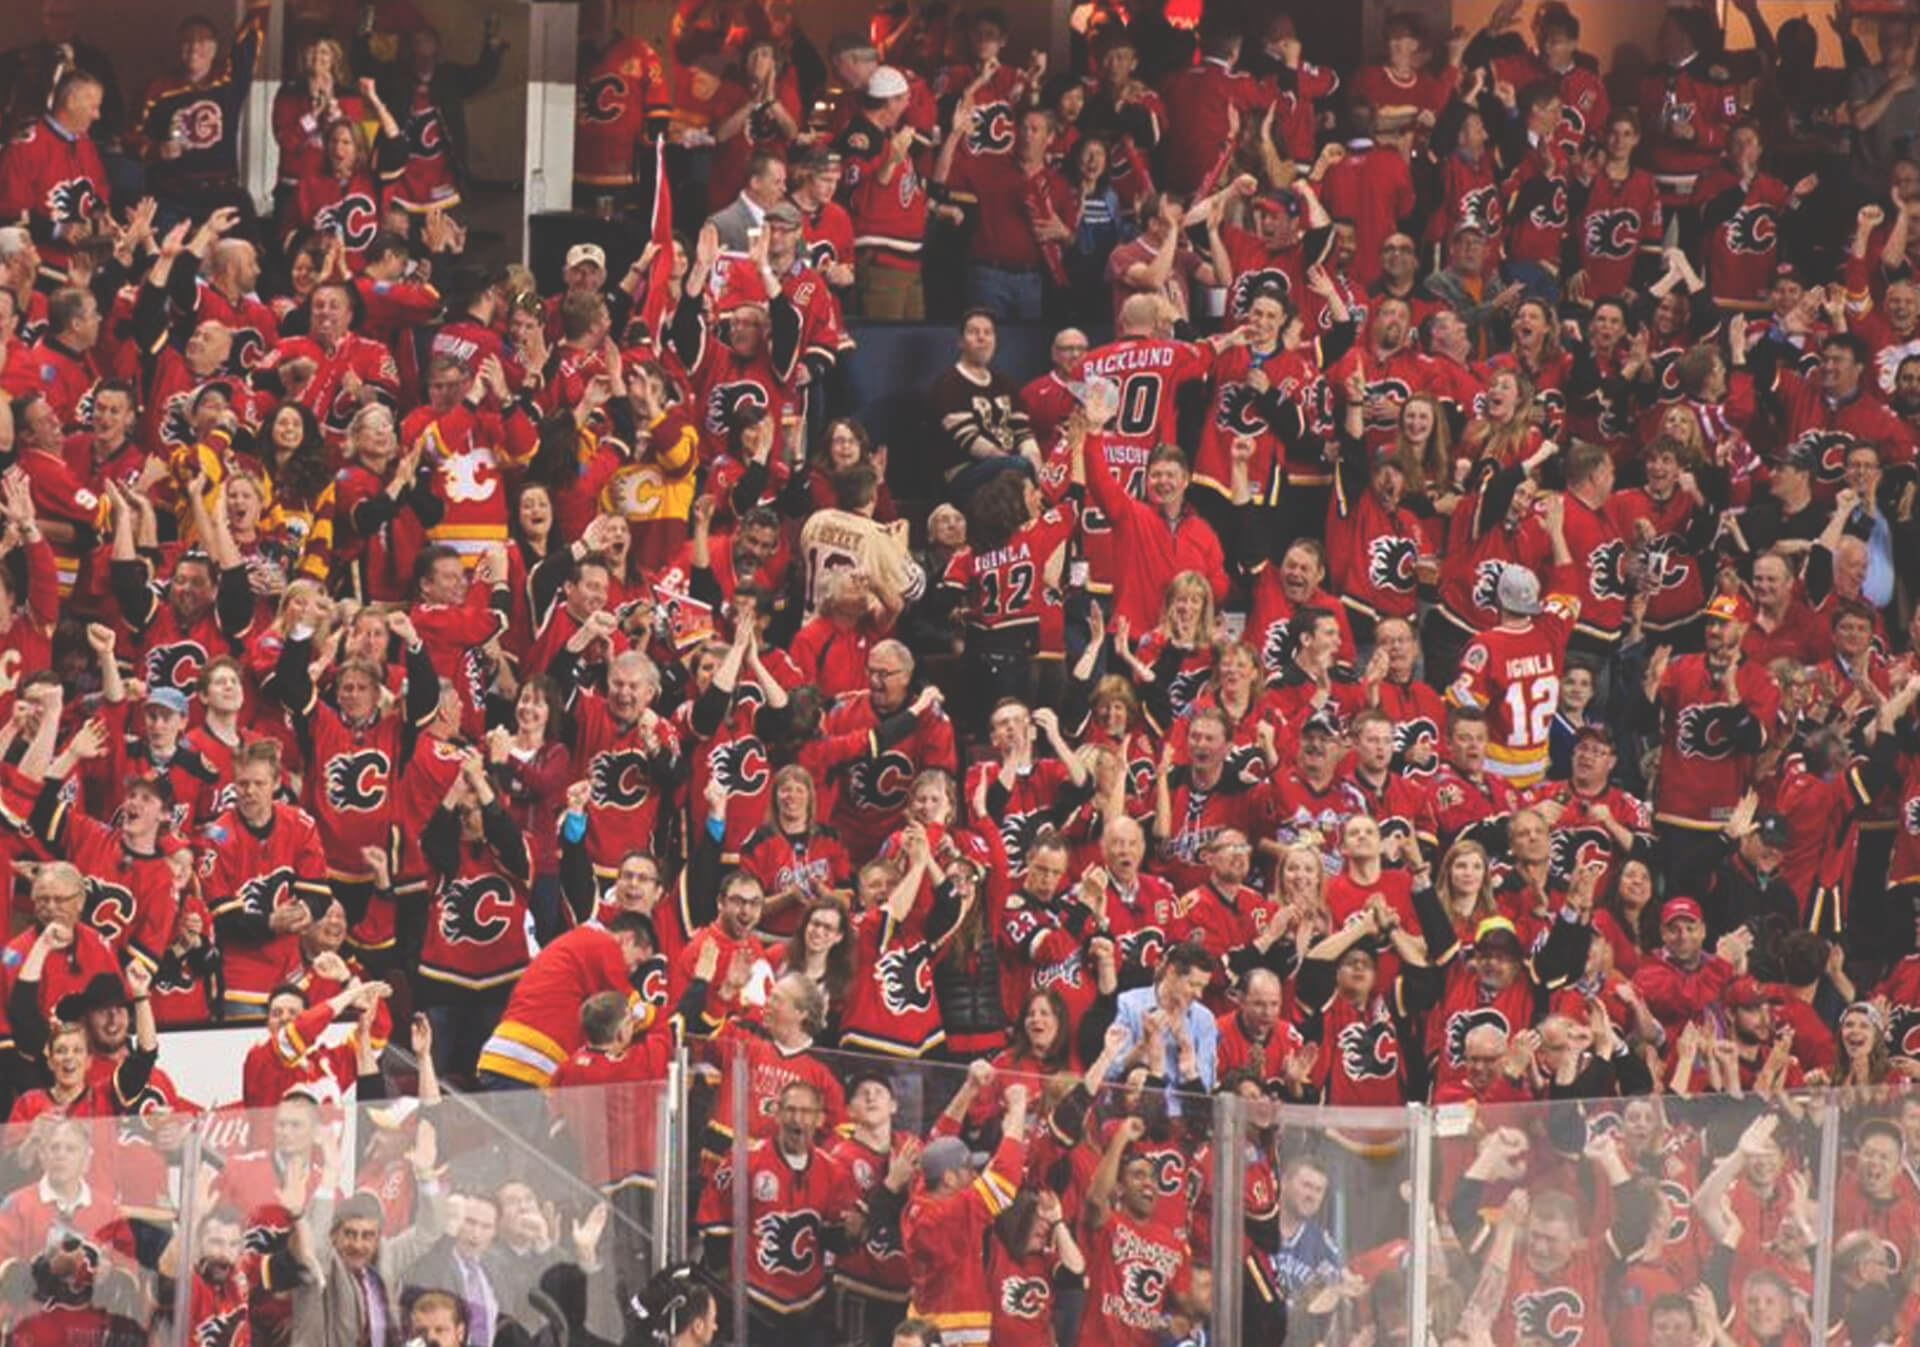 Calgary Flames NHL Fans cheering wildly in the stands